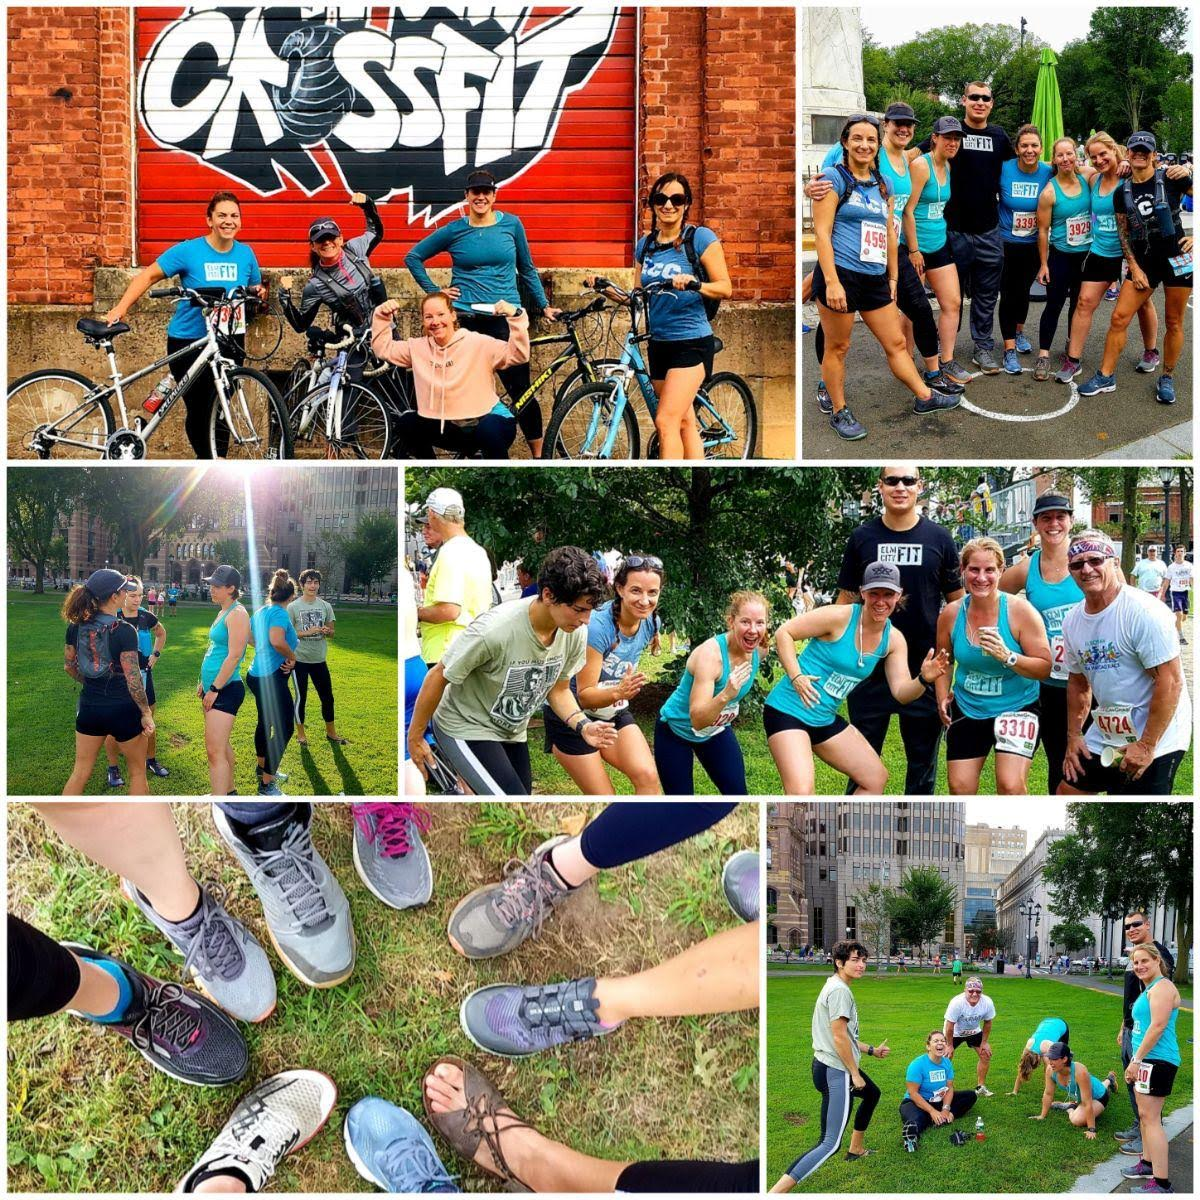 ECF representing at the New Haven Road Race this weekend!  Go team!  (Photo collage credit: Shirley)